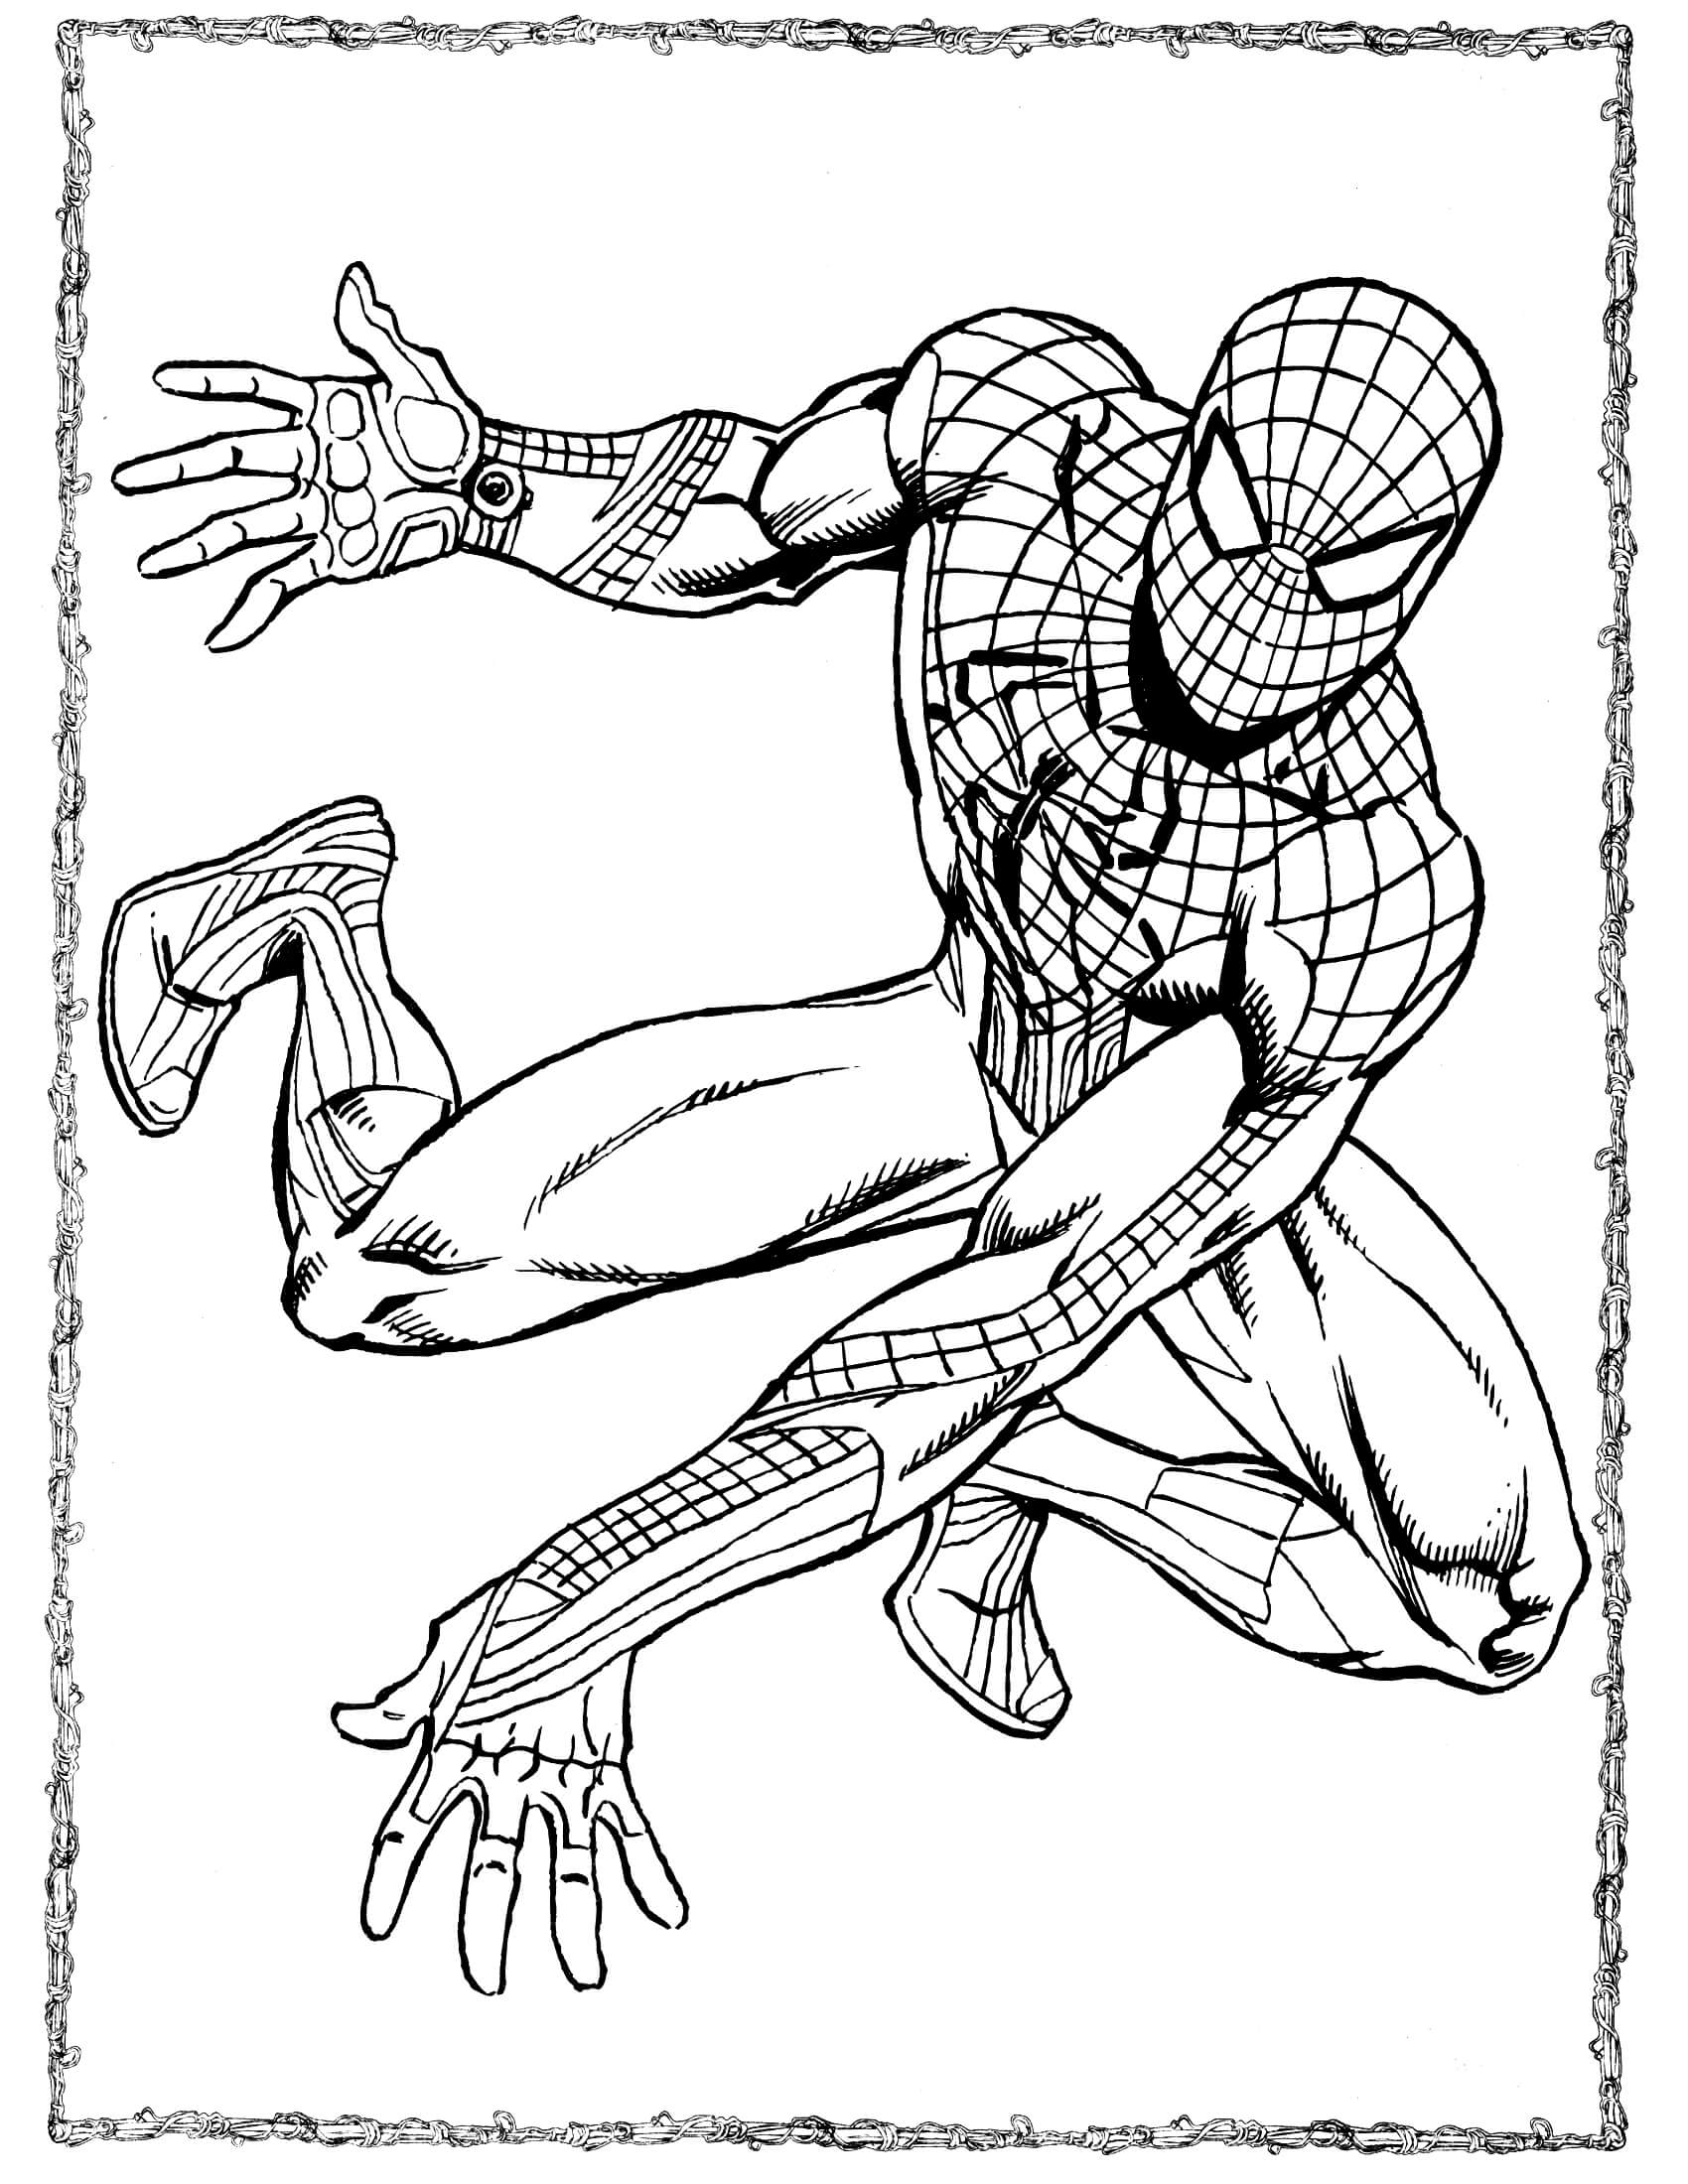 spider man 2099 coloring pages spider man 2099 art coloring pages spider pages man 2099 coloring